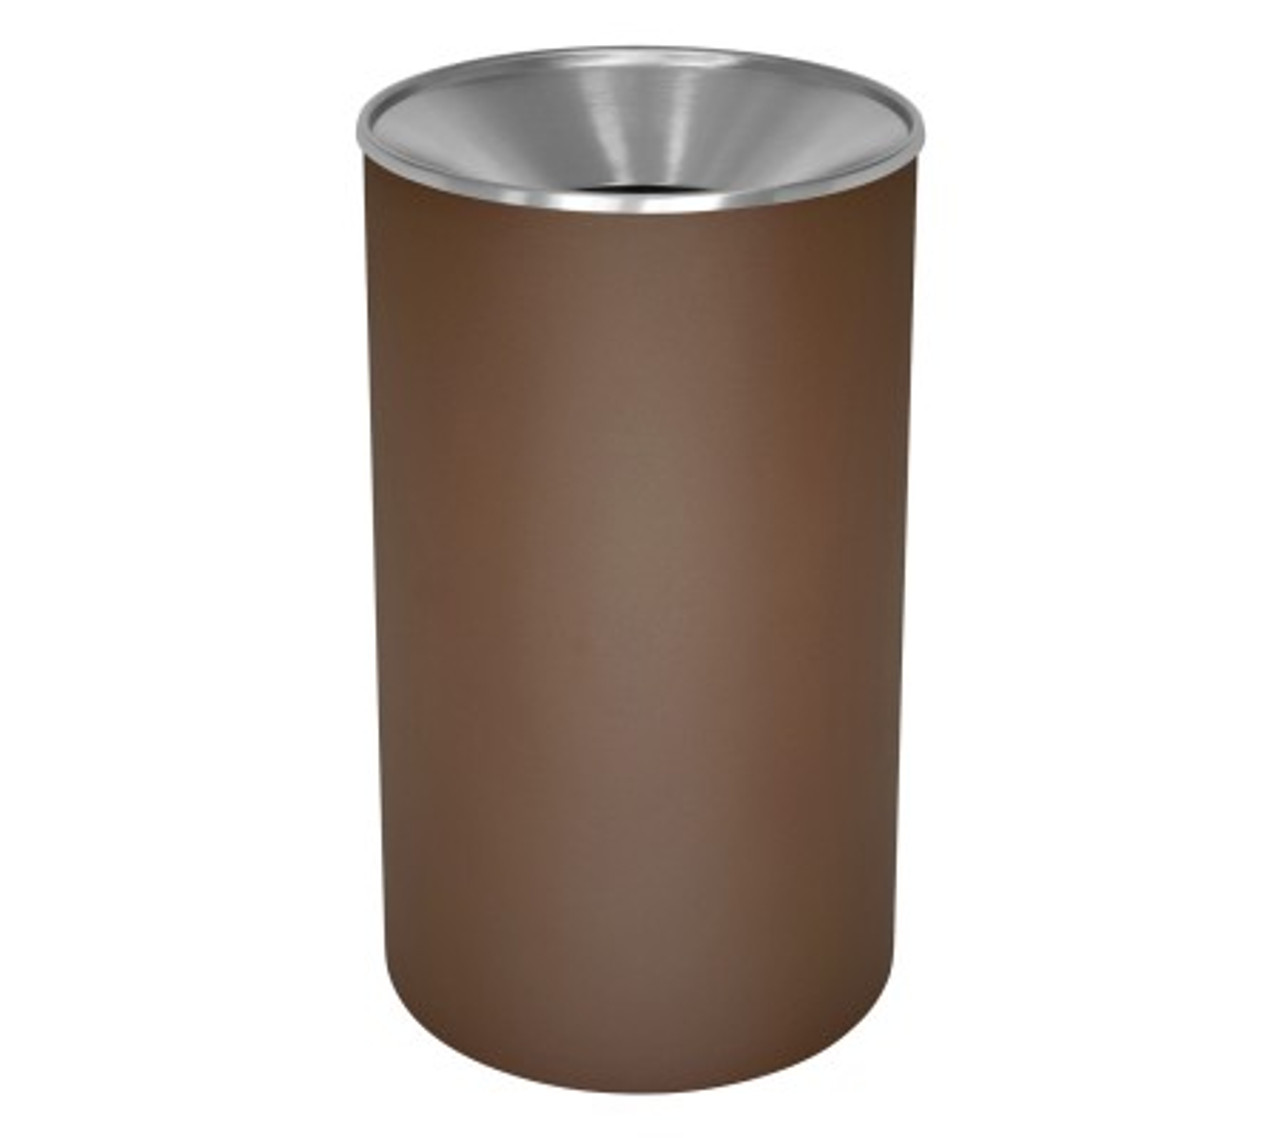 Excell 33 Gallon Metal Indoor Outdoor Trash Can Brown